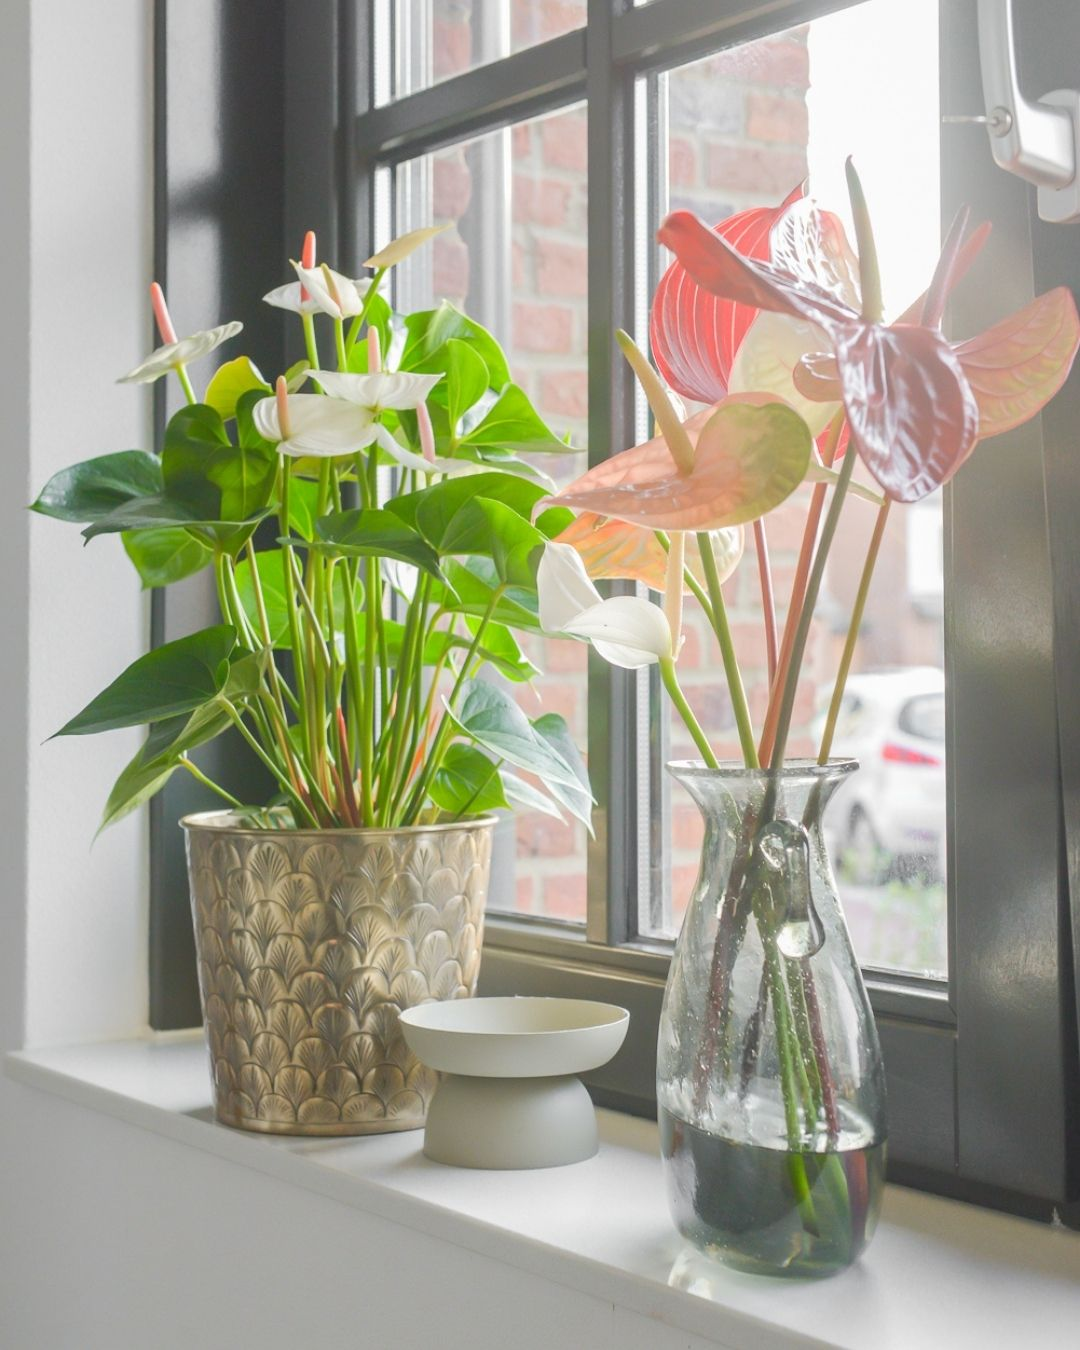 This is how Binti Home Blog styles anthuriums in her interior